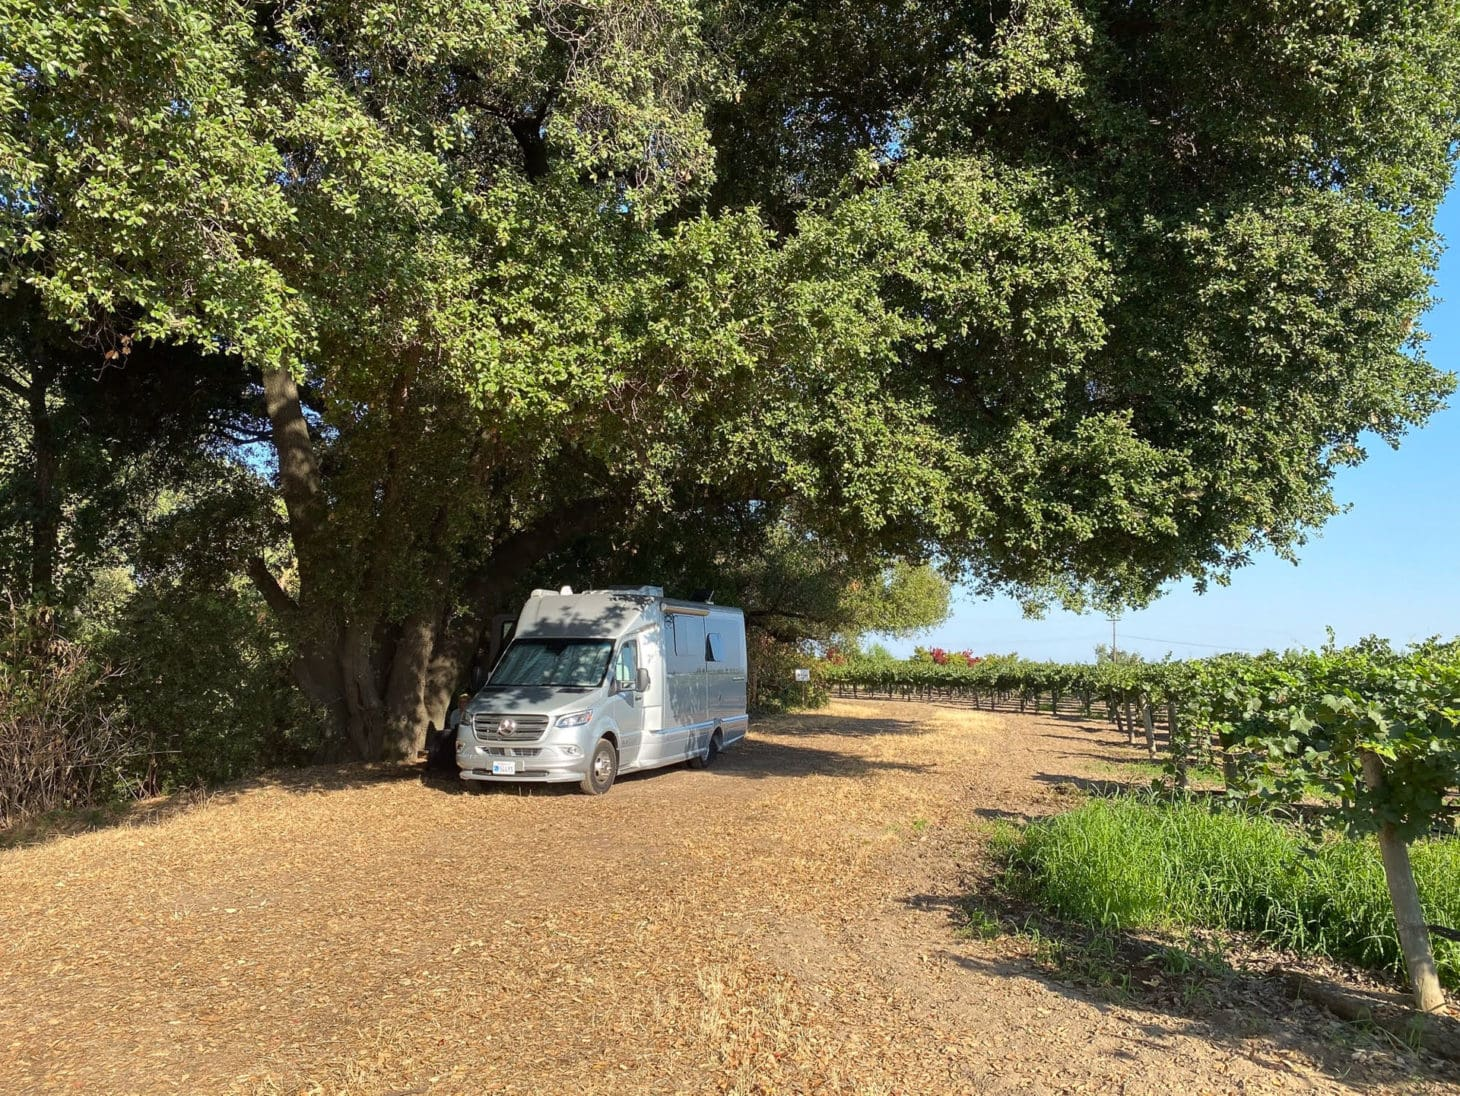 Sprinter van parked at campsite at winery